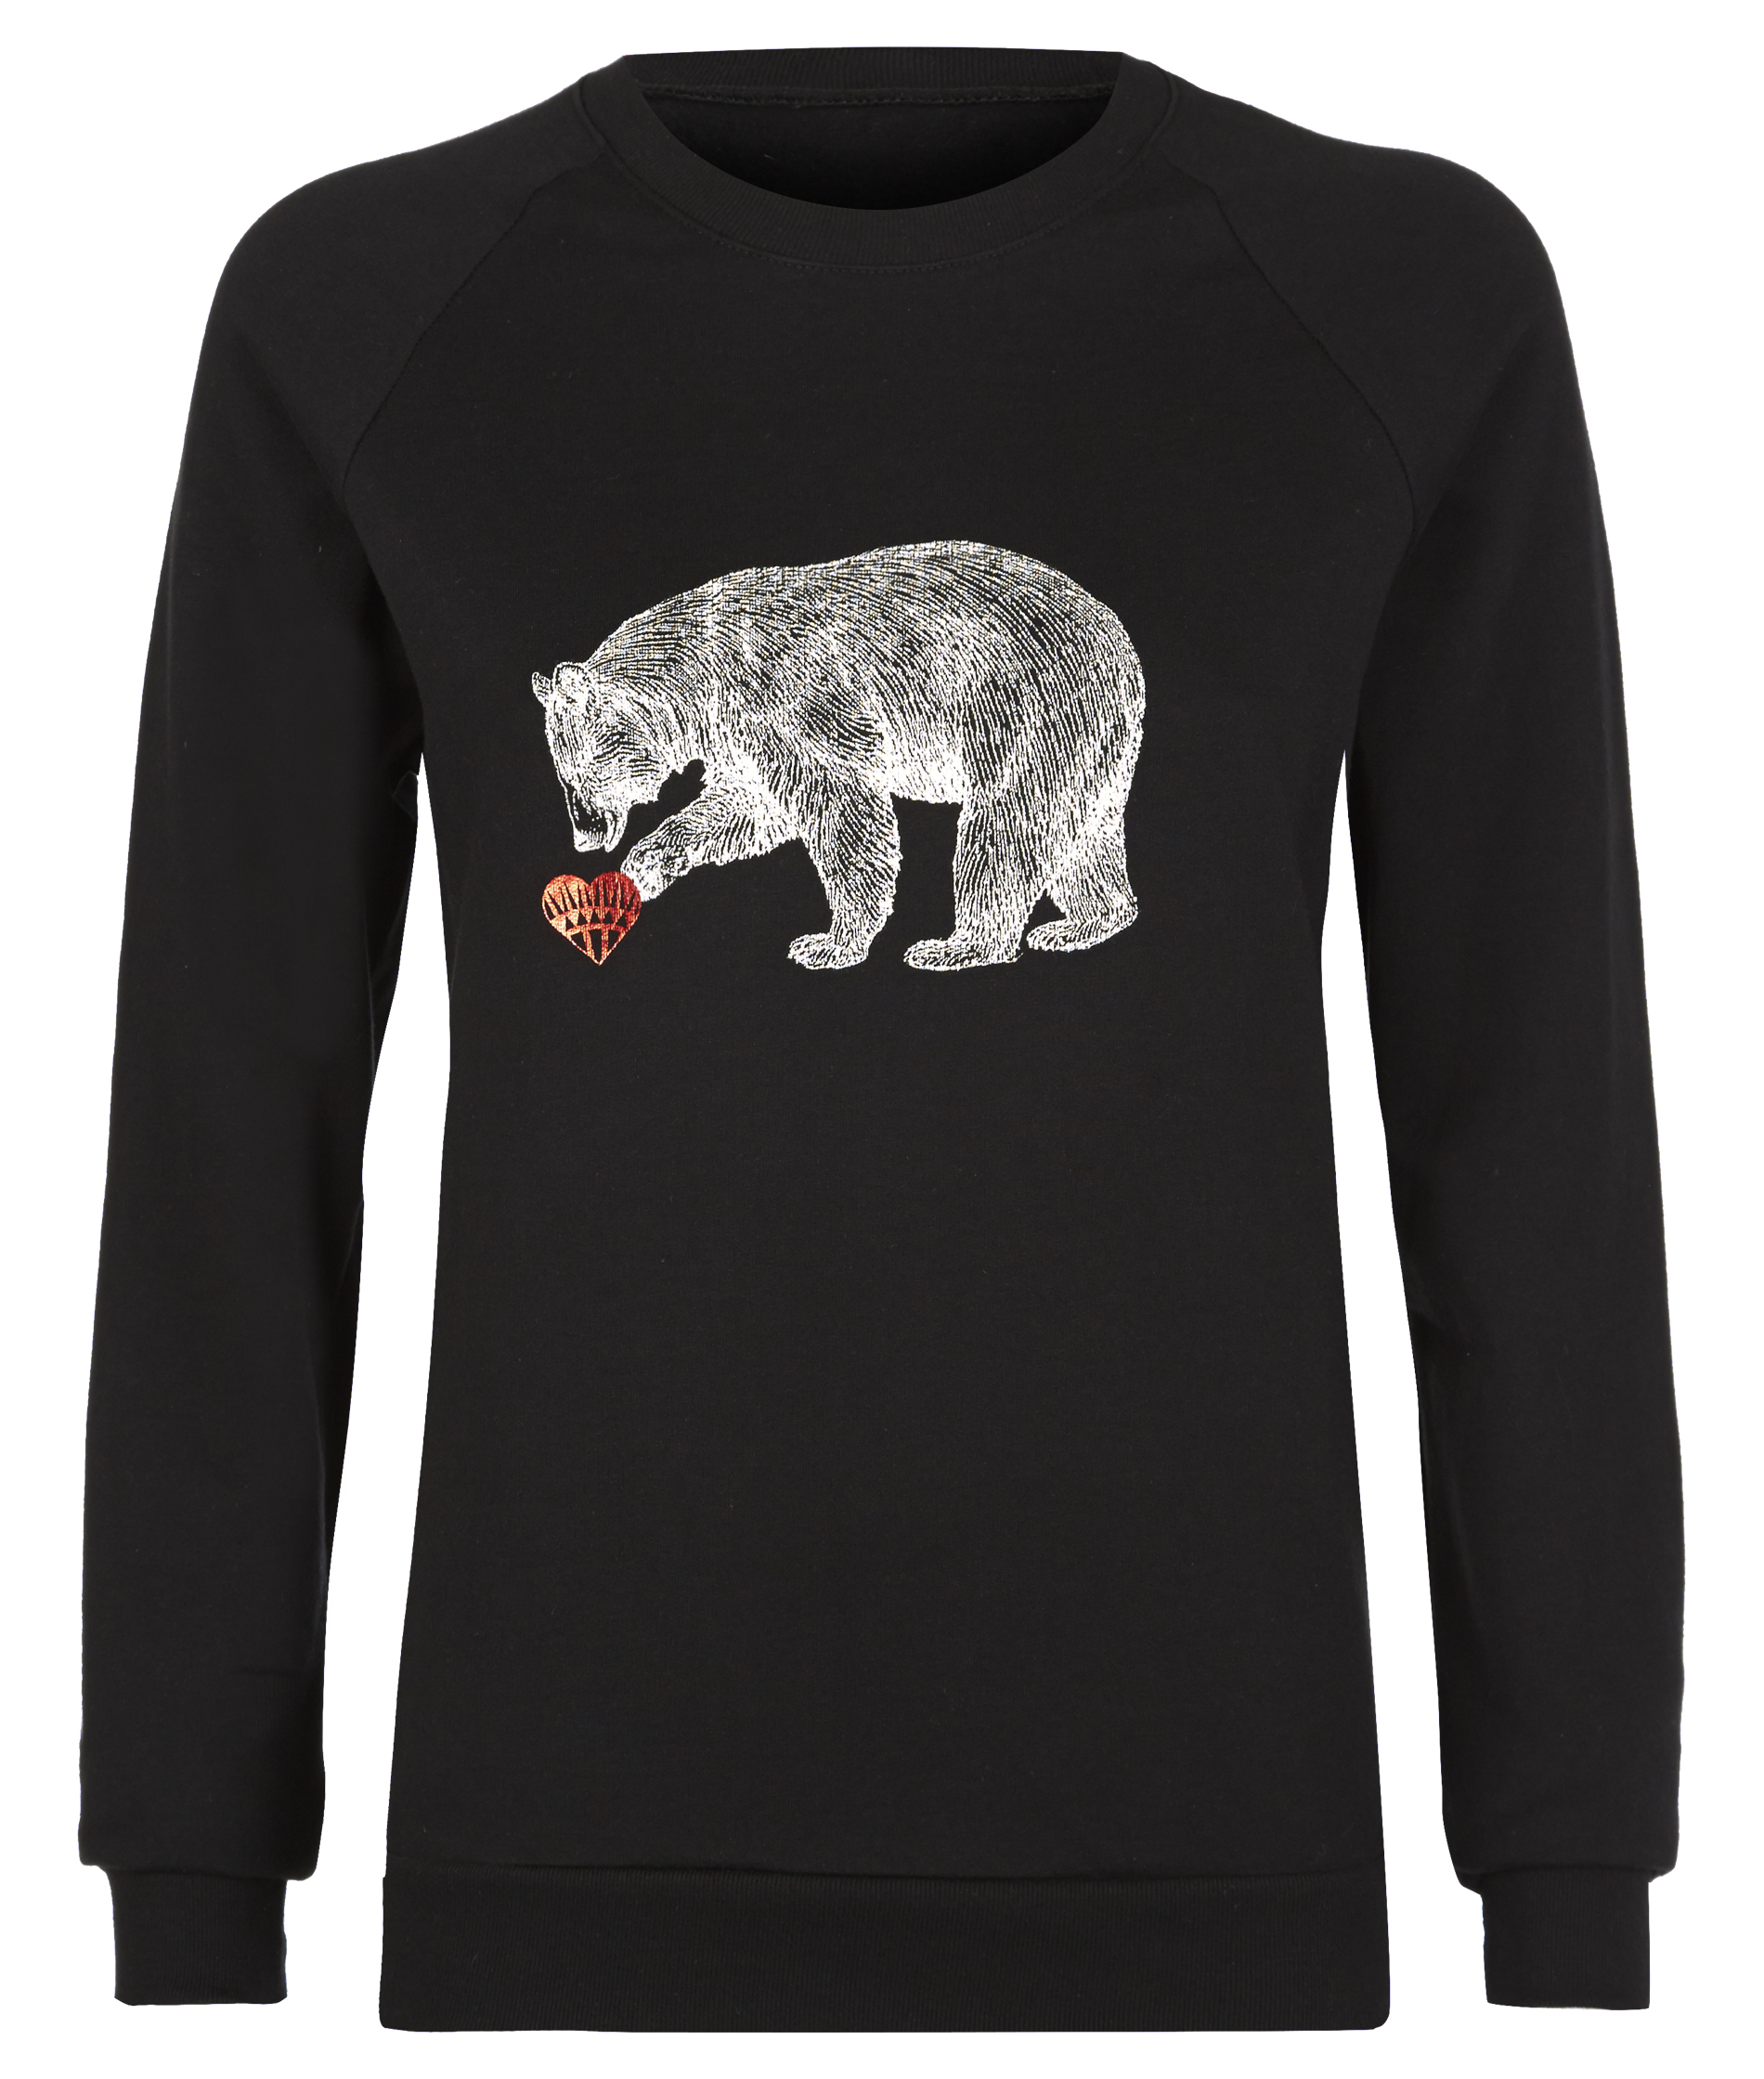 Holly Fulton Black Sweatshirt With Screen Printed Red Foil Heart And White Bear